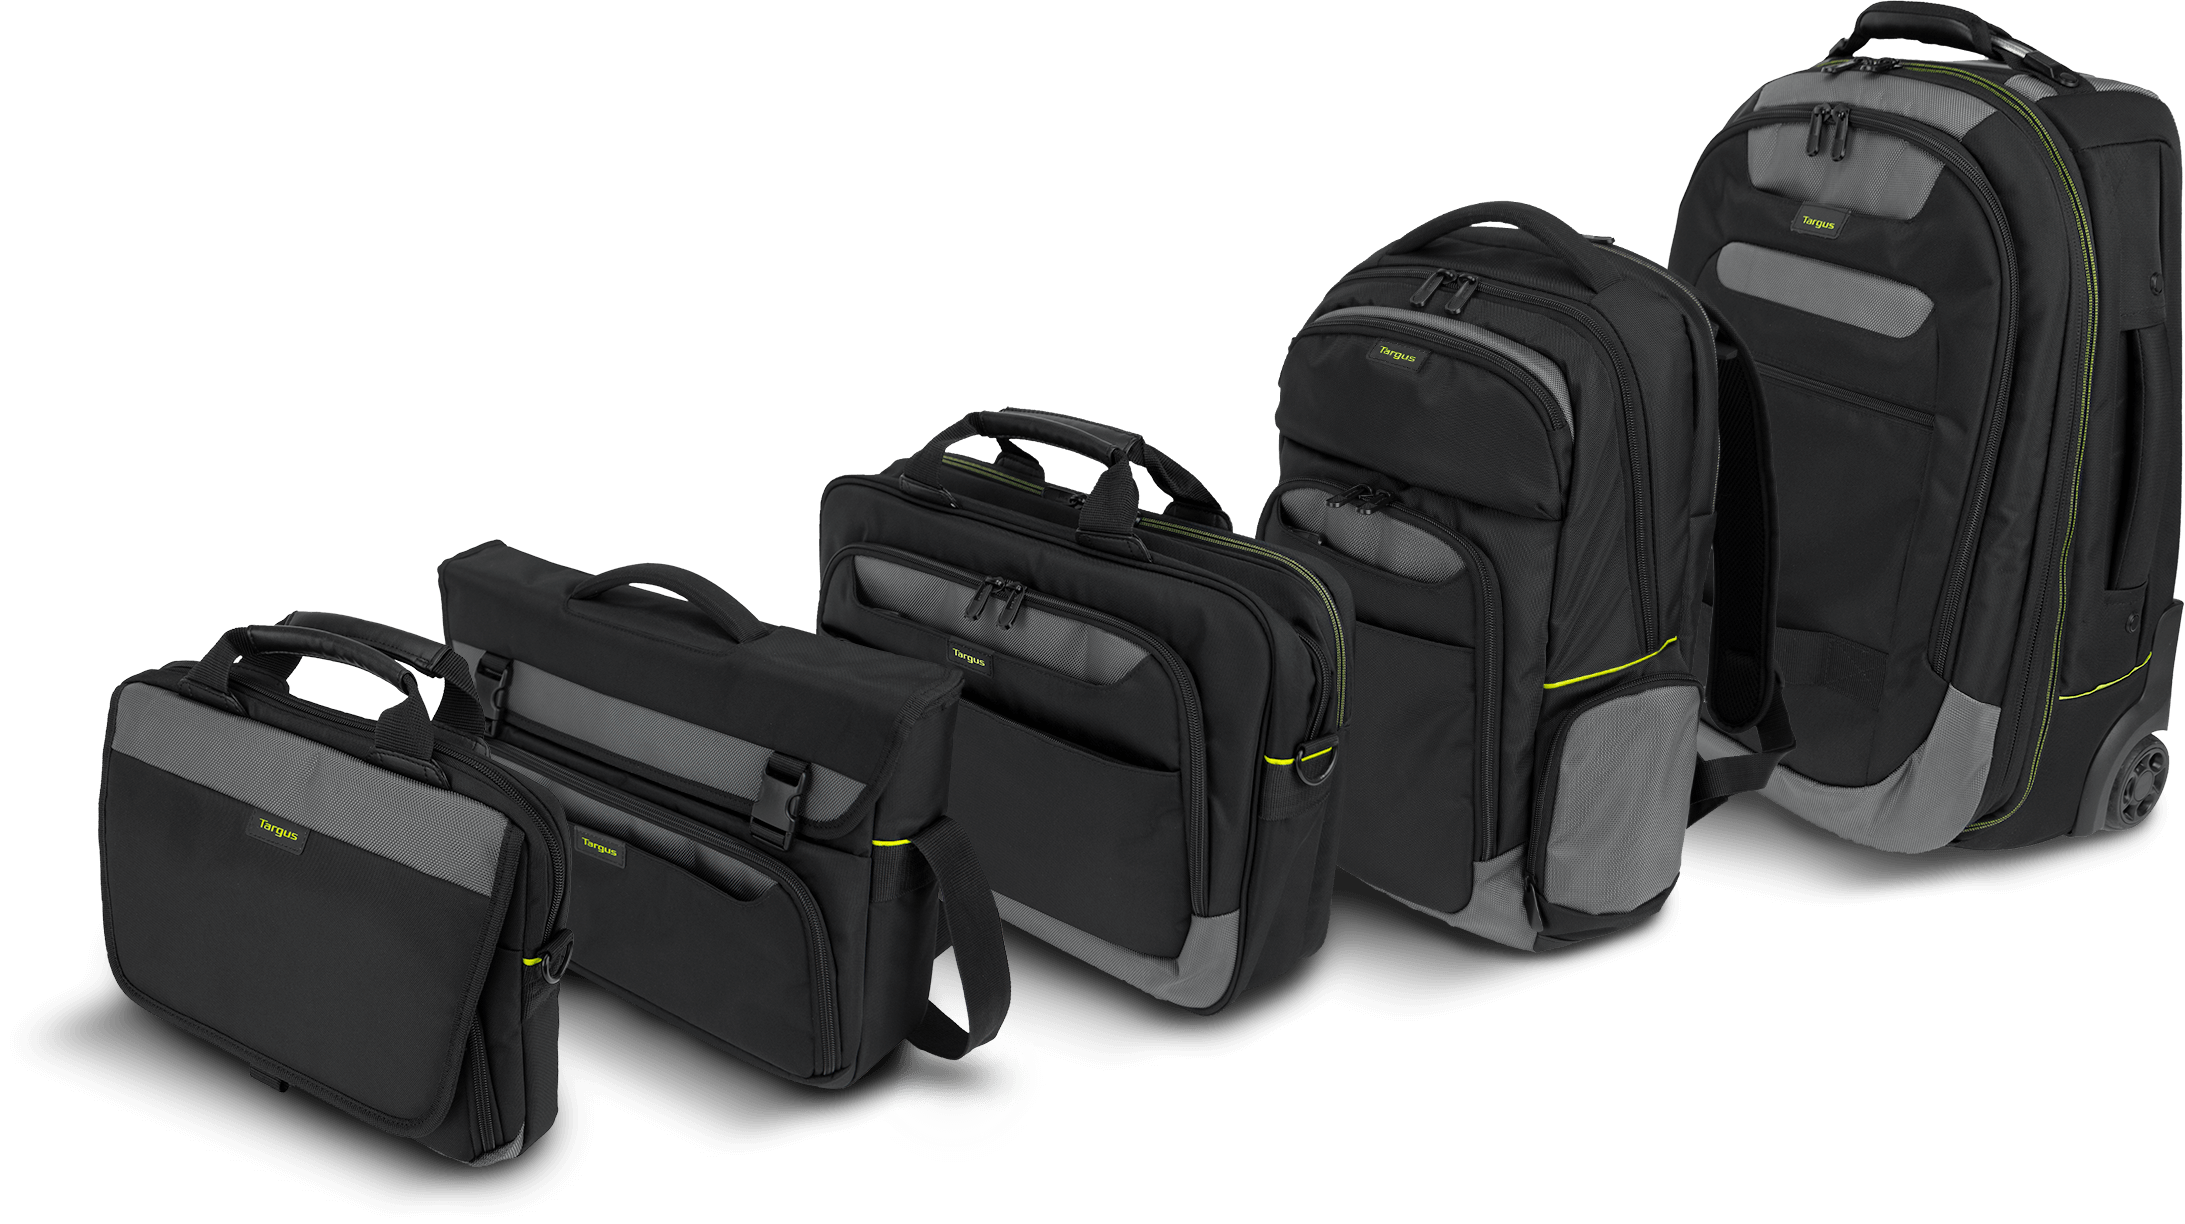 Targus City Gear Bag Collection